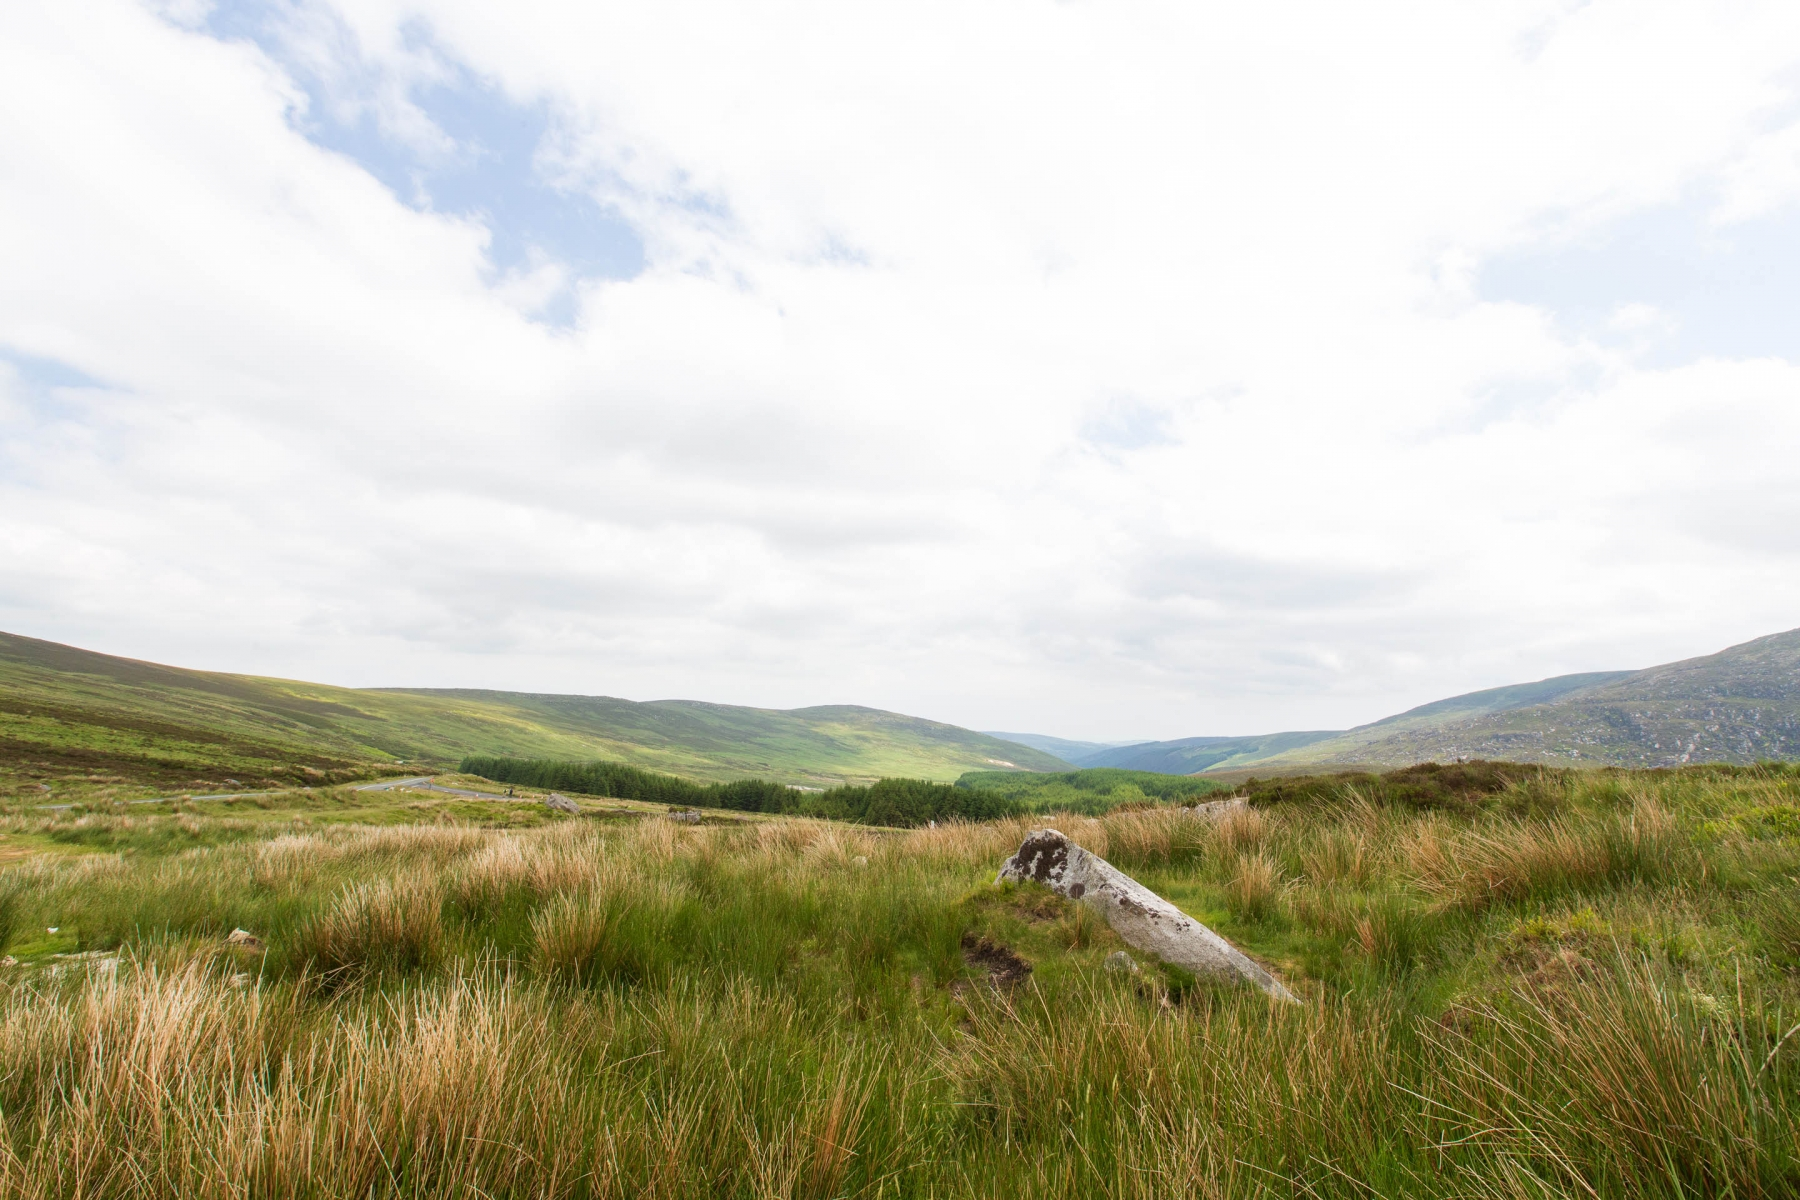 While not as rugged as Scotland, the Irish country side does have her charms..